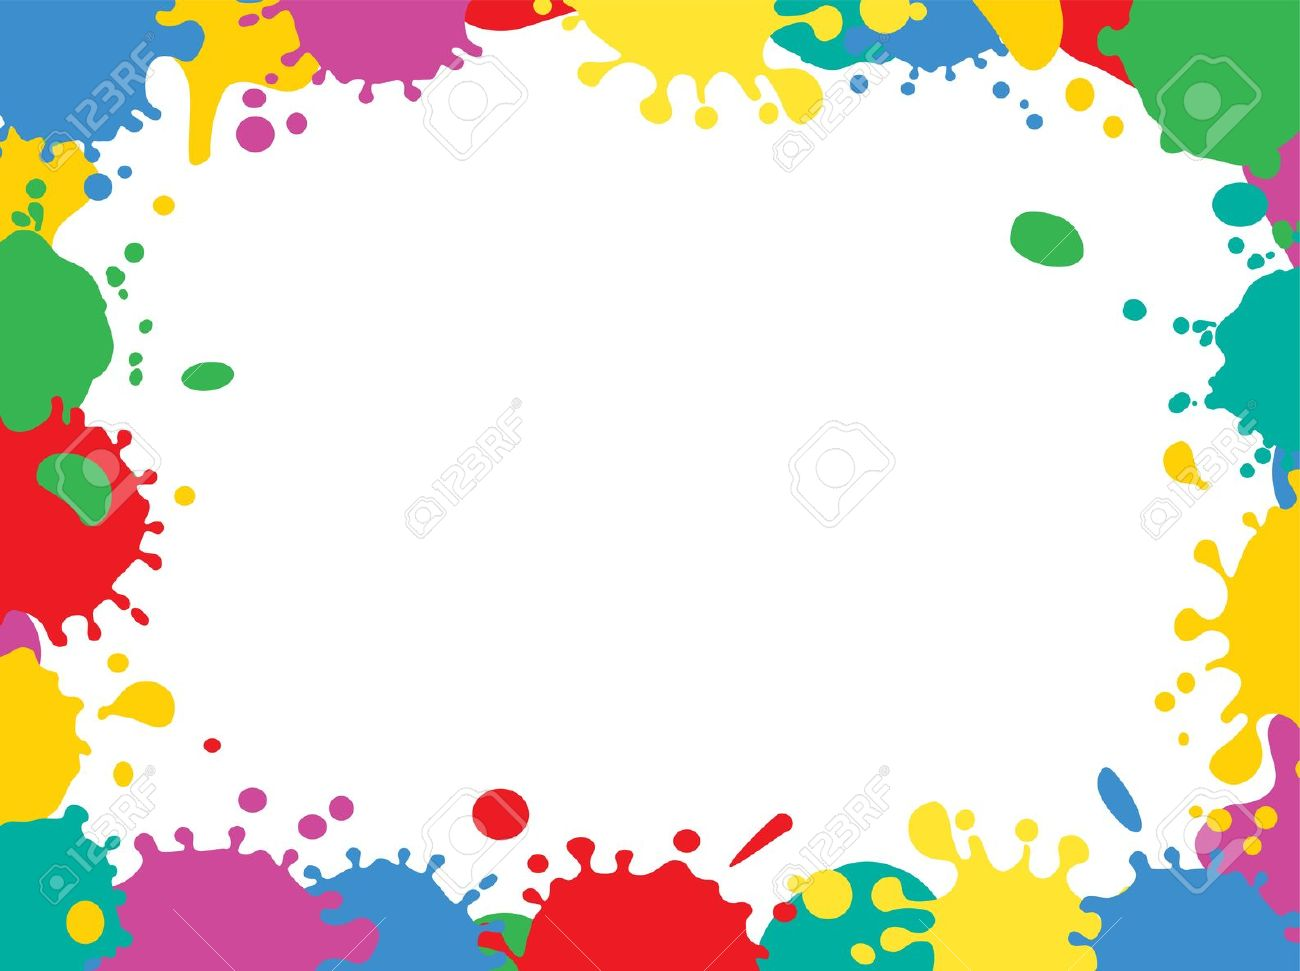 Painting Cliparts Border Free Download Clip Art.